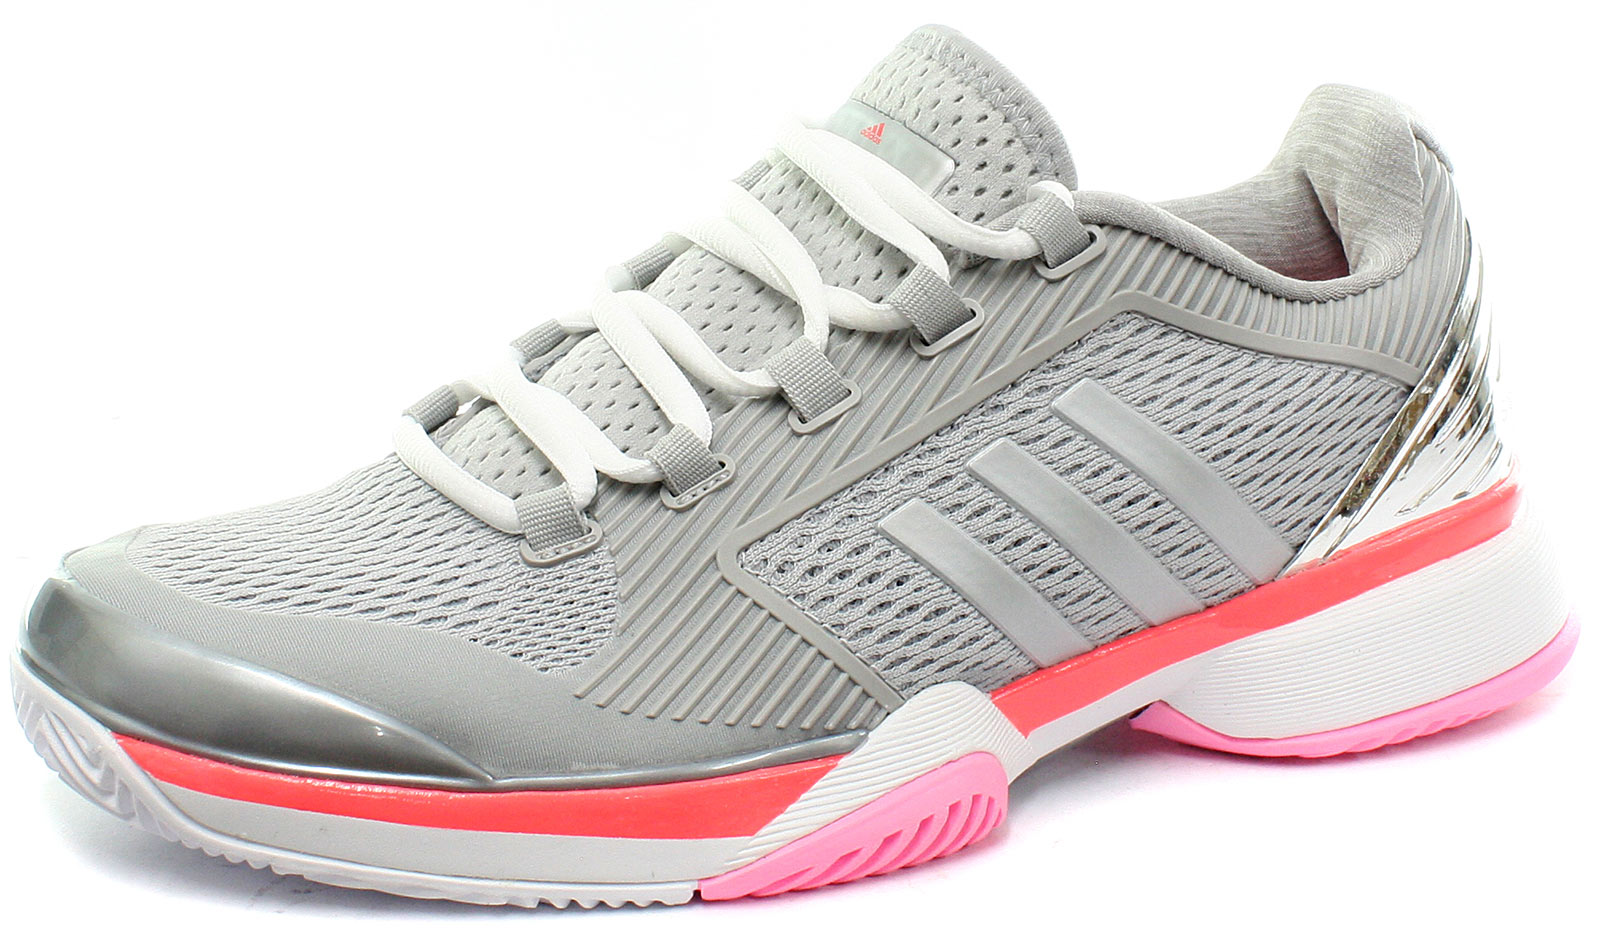 separation shoes bd9e4 ac5be Stella Mujer Adidas Calzado Para 2016 Asmc Barricade Mccartney SwdFq6